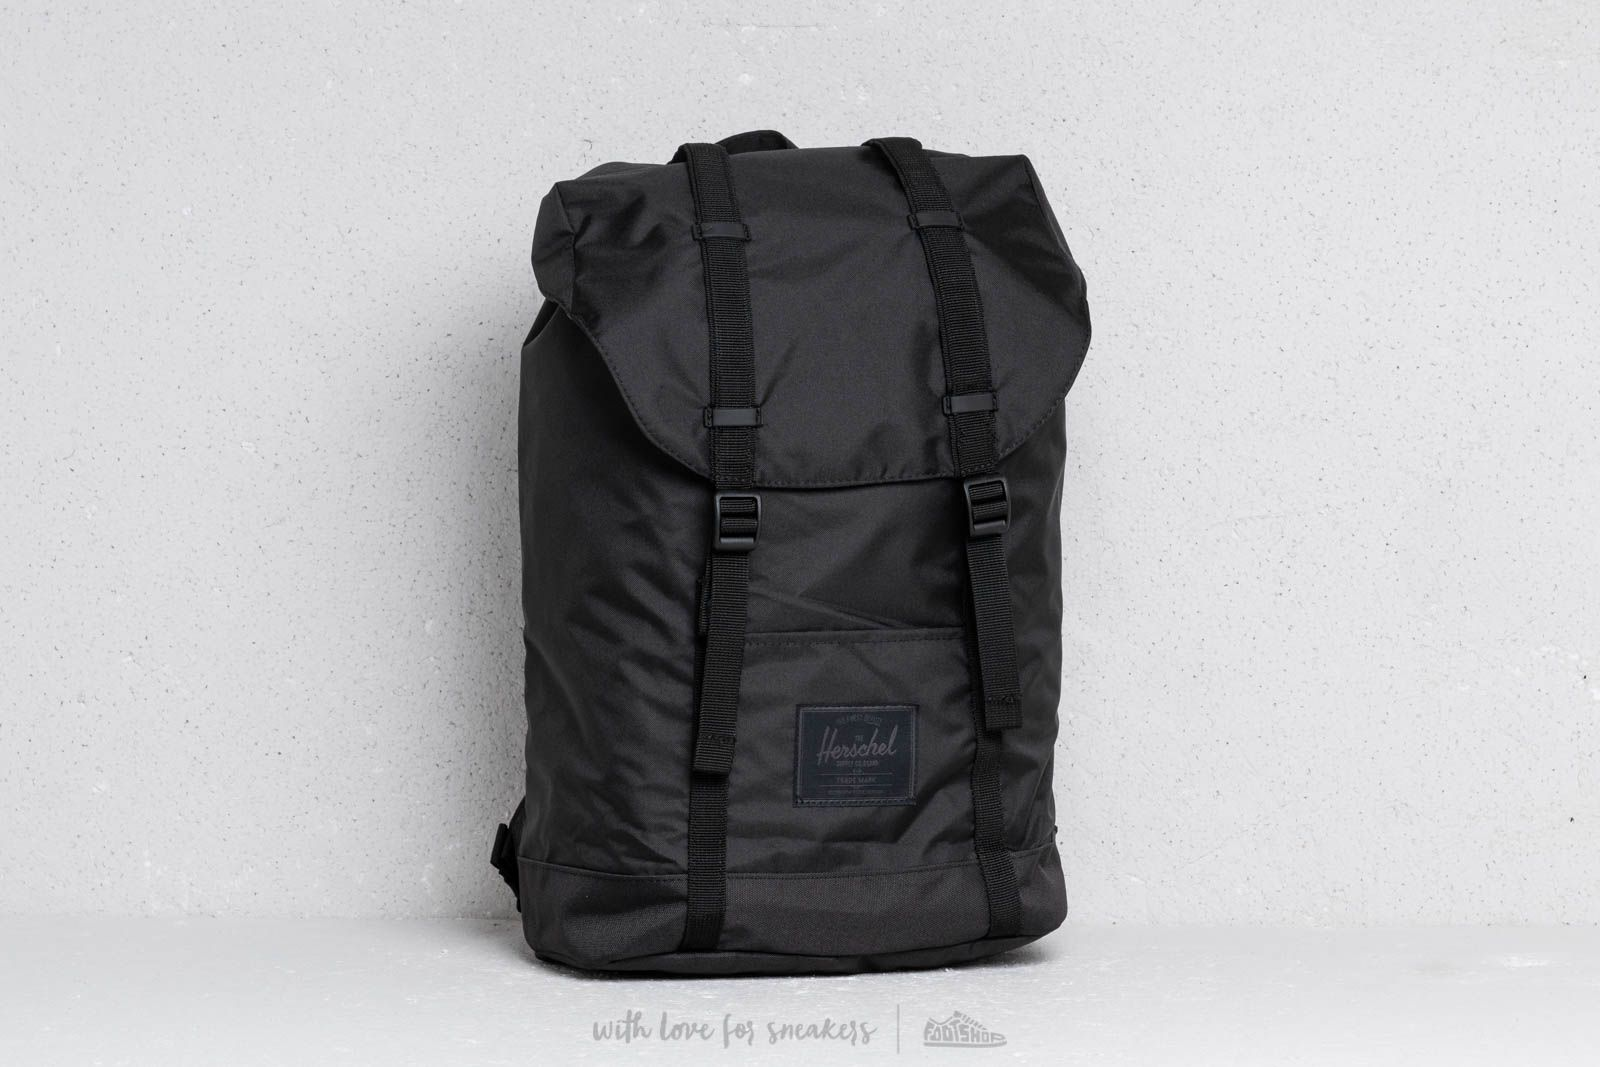 ff0cbb04a2df Herschel Supply Co. Retreat Light Backpack Black at a great price  101 buy  at Footshop